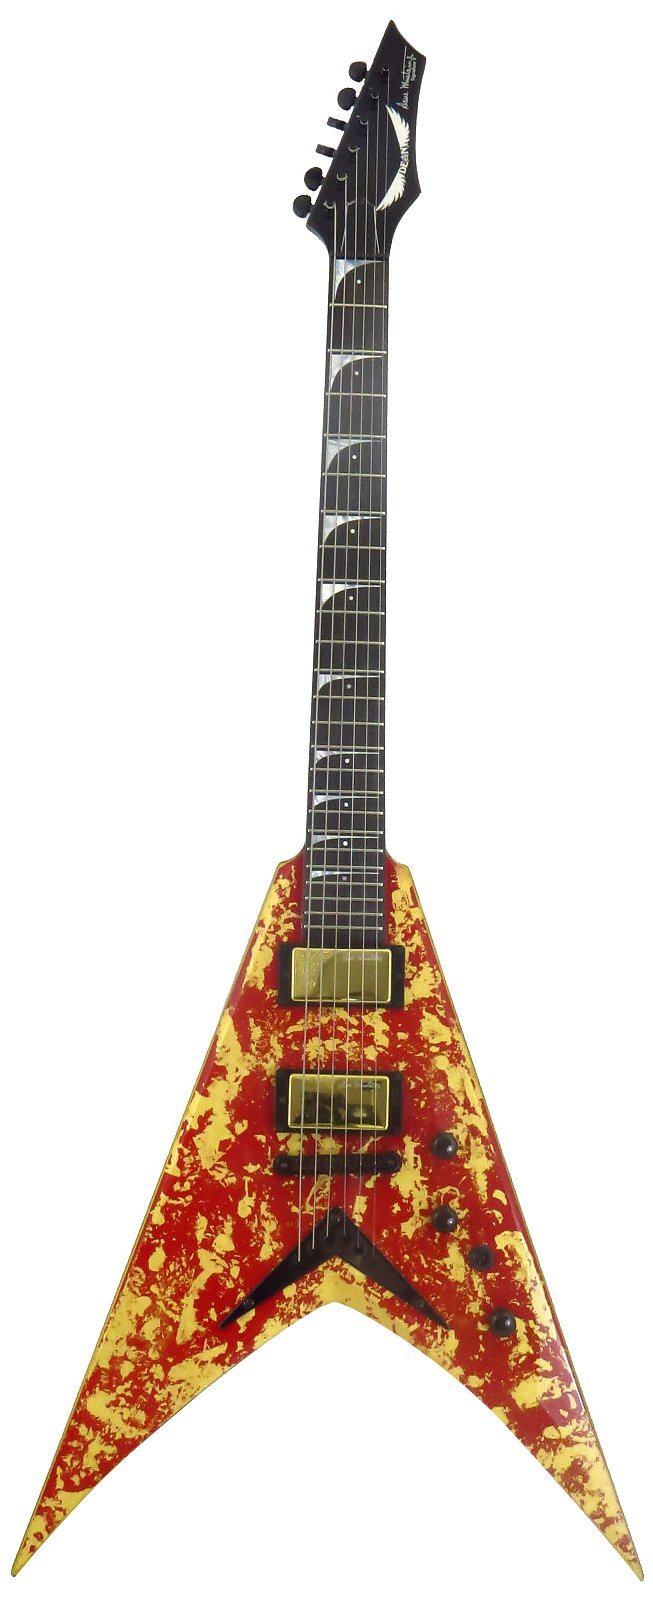 Cheap Dean Guitars Dave Mustaine VMNT Holy Grail Limited Edition 33 Pc Solid-Body Electric Guitar Gold Leaf/Deep Red Black Friday & Cyber Monday 2019